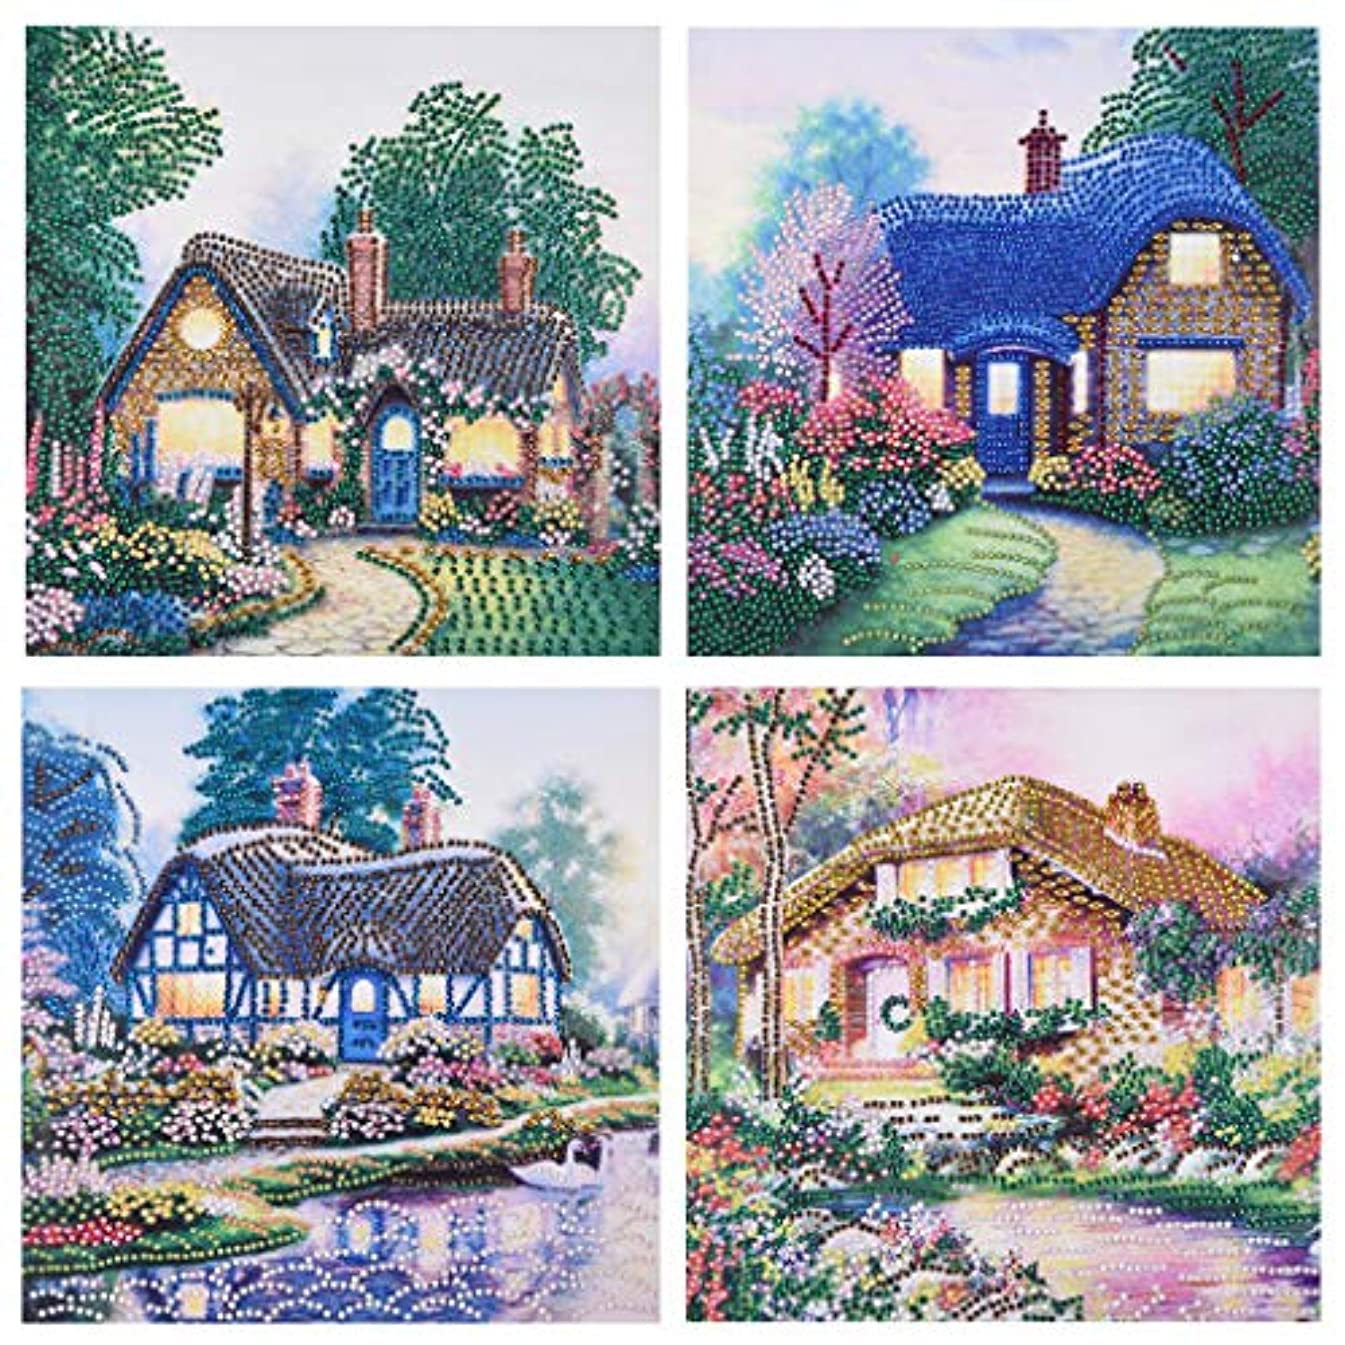 DIY 5D Special Shaped Diamond Painting by Number Kits, Section Drill Rhinestone Embroidery Cross Stitch Pictures for Home Decor Ross Beauty 4 Packs/Set (House01)